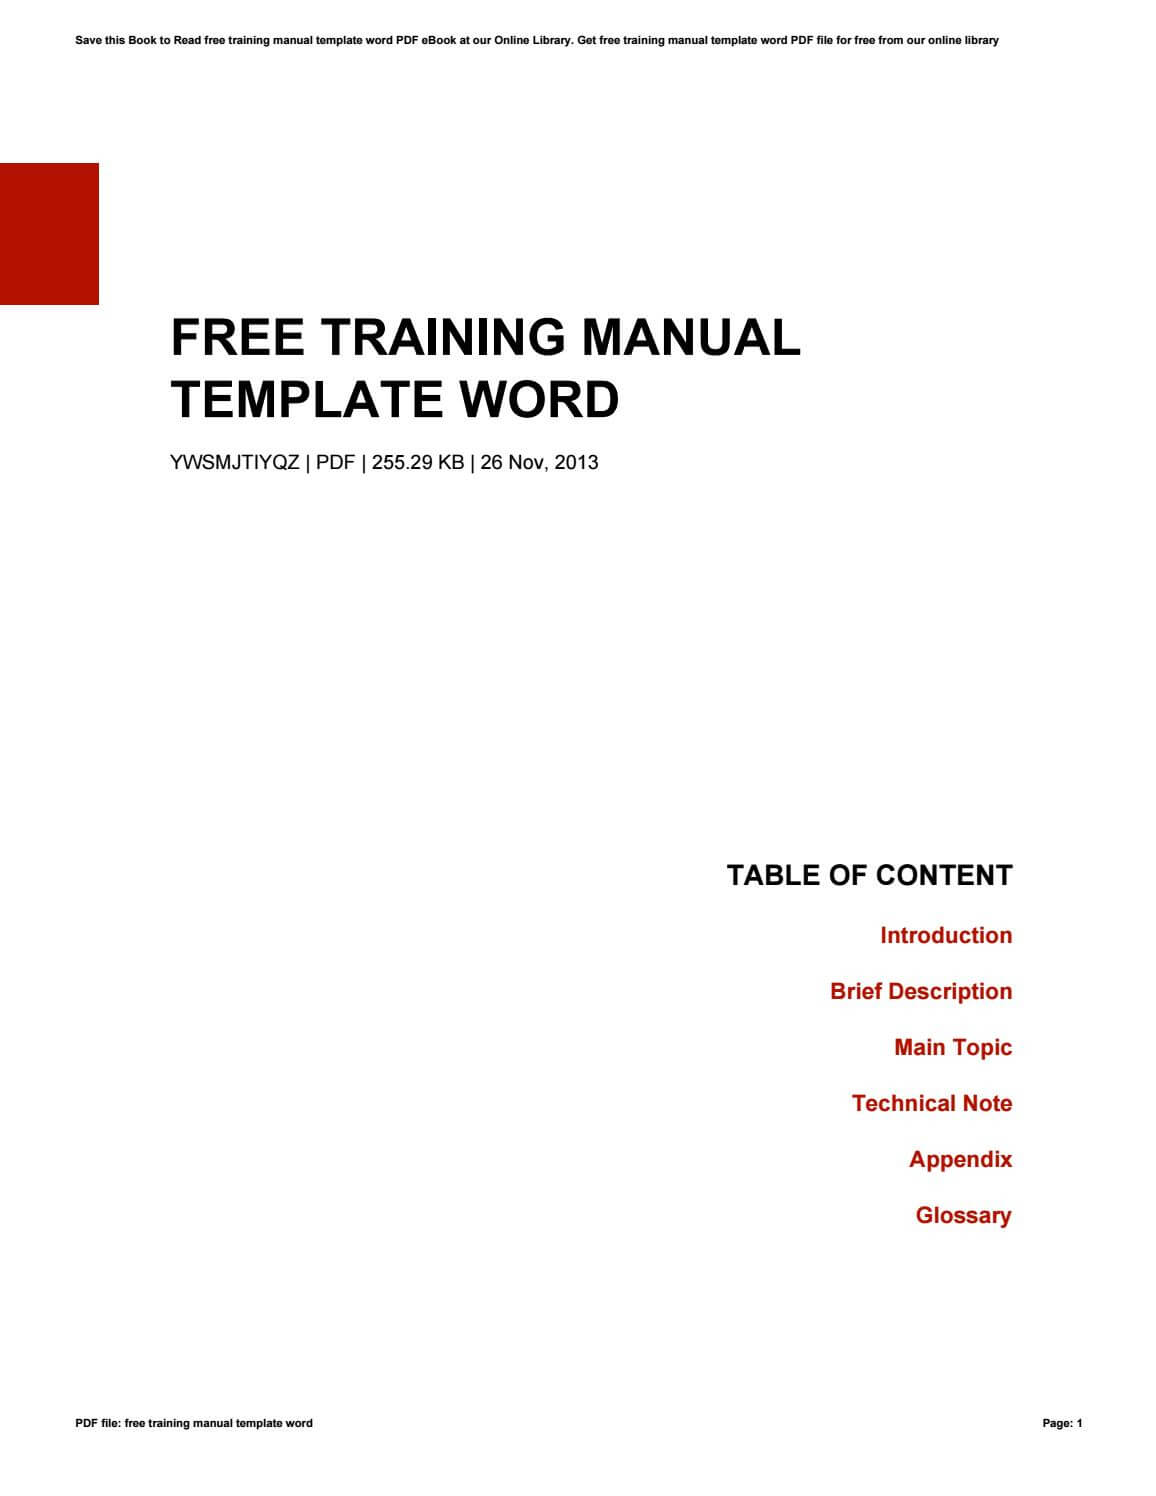 003 Training Manual Template Word Ideas Page 1 Fascinating intended for Training Manual Template Microsoft Word